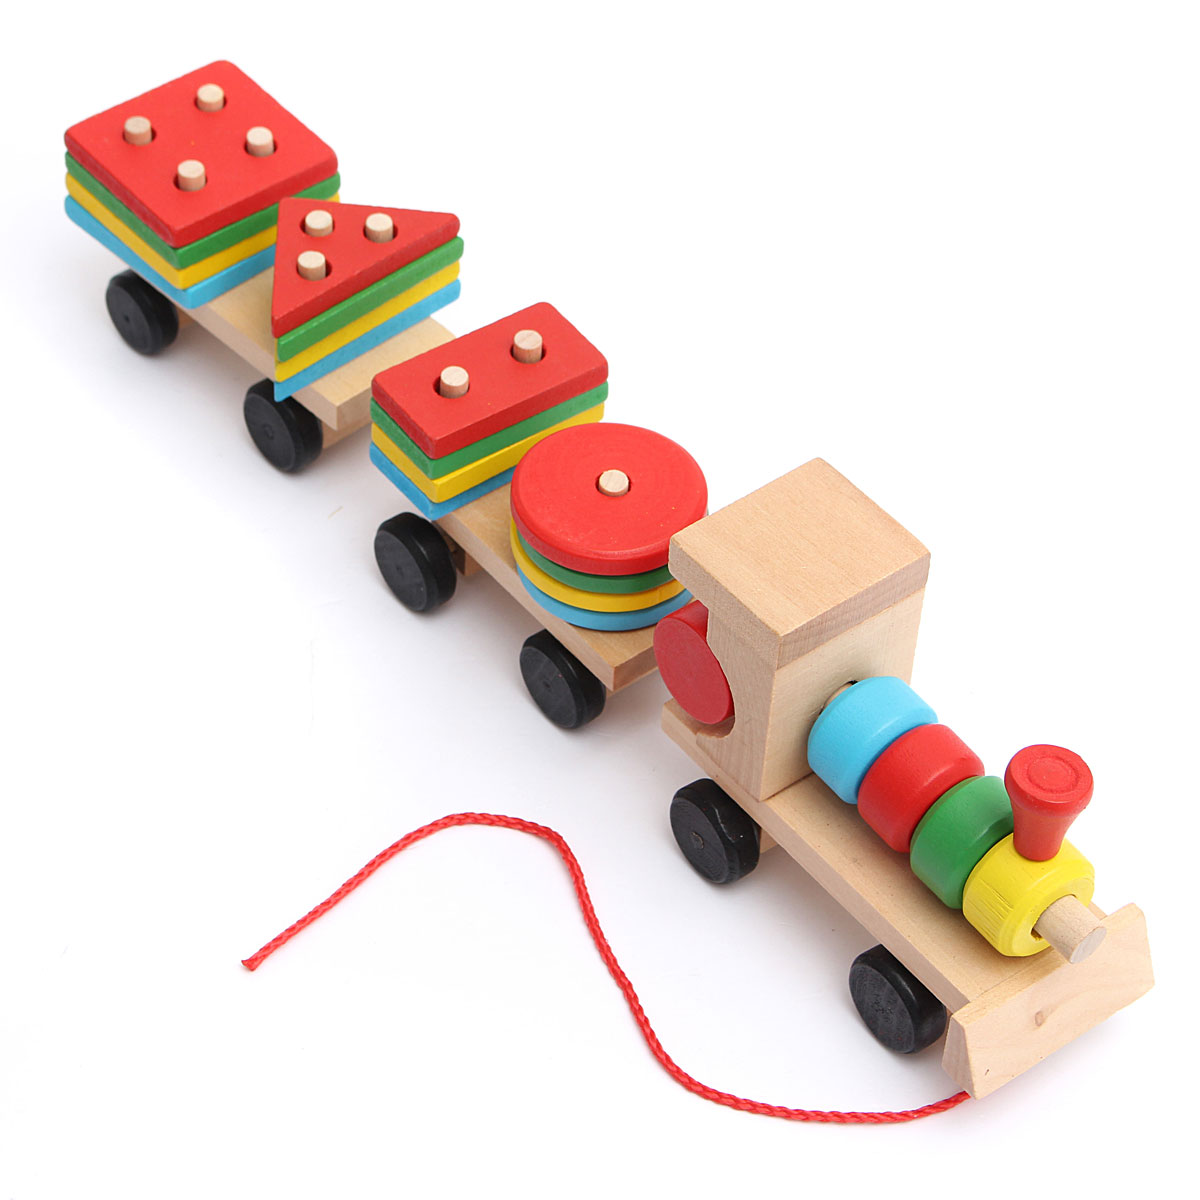 Wooden Toy Stacking Learning Train Wooden Blocks For Boys